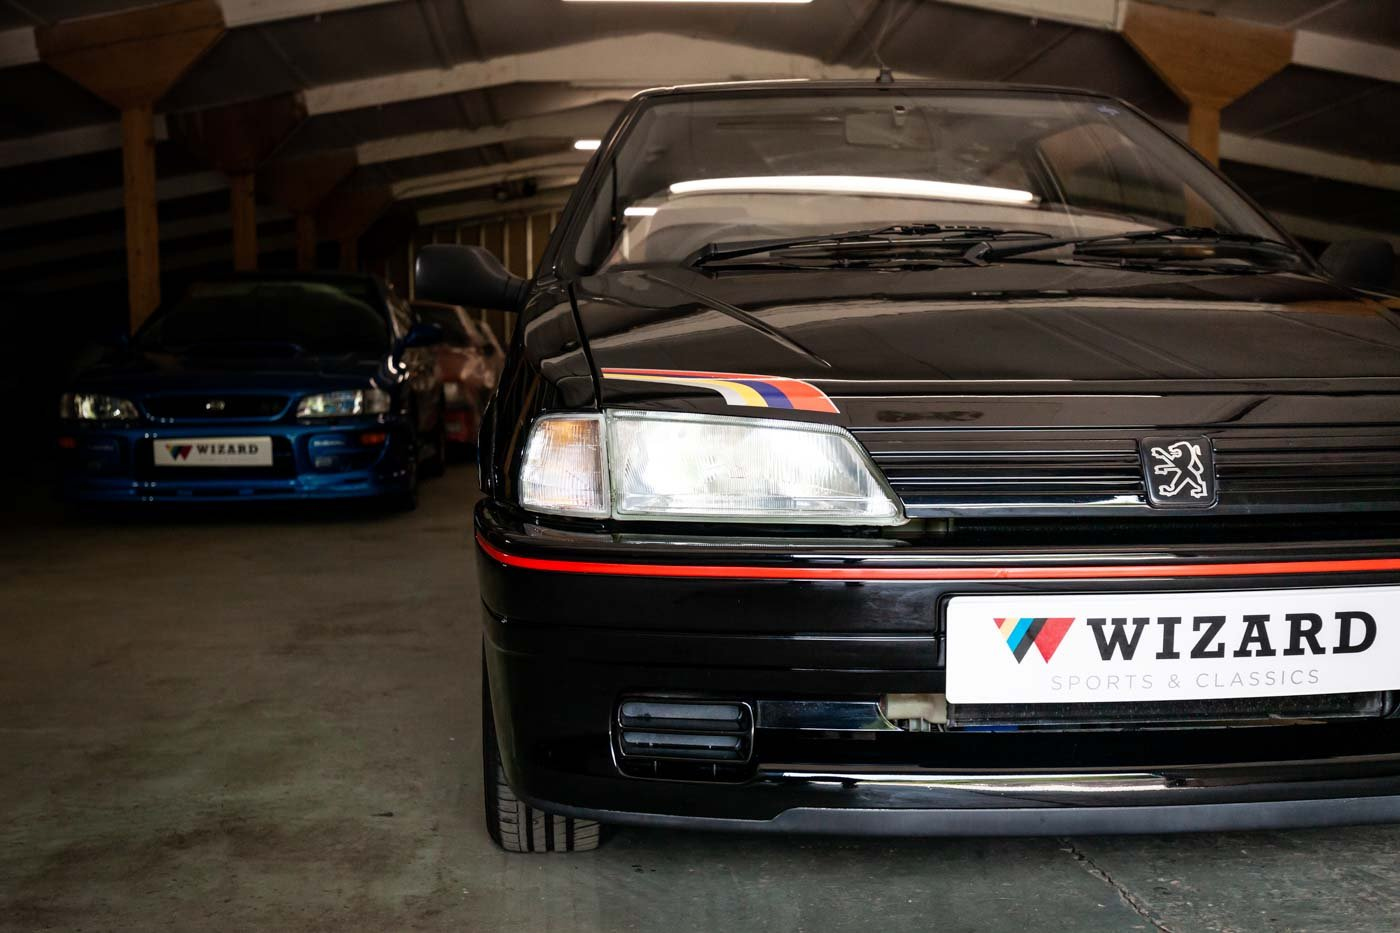 1995 Peugeot 106 Rallye S1 For Sale (picture 14 of 15)